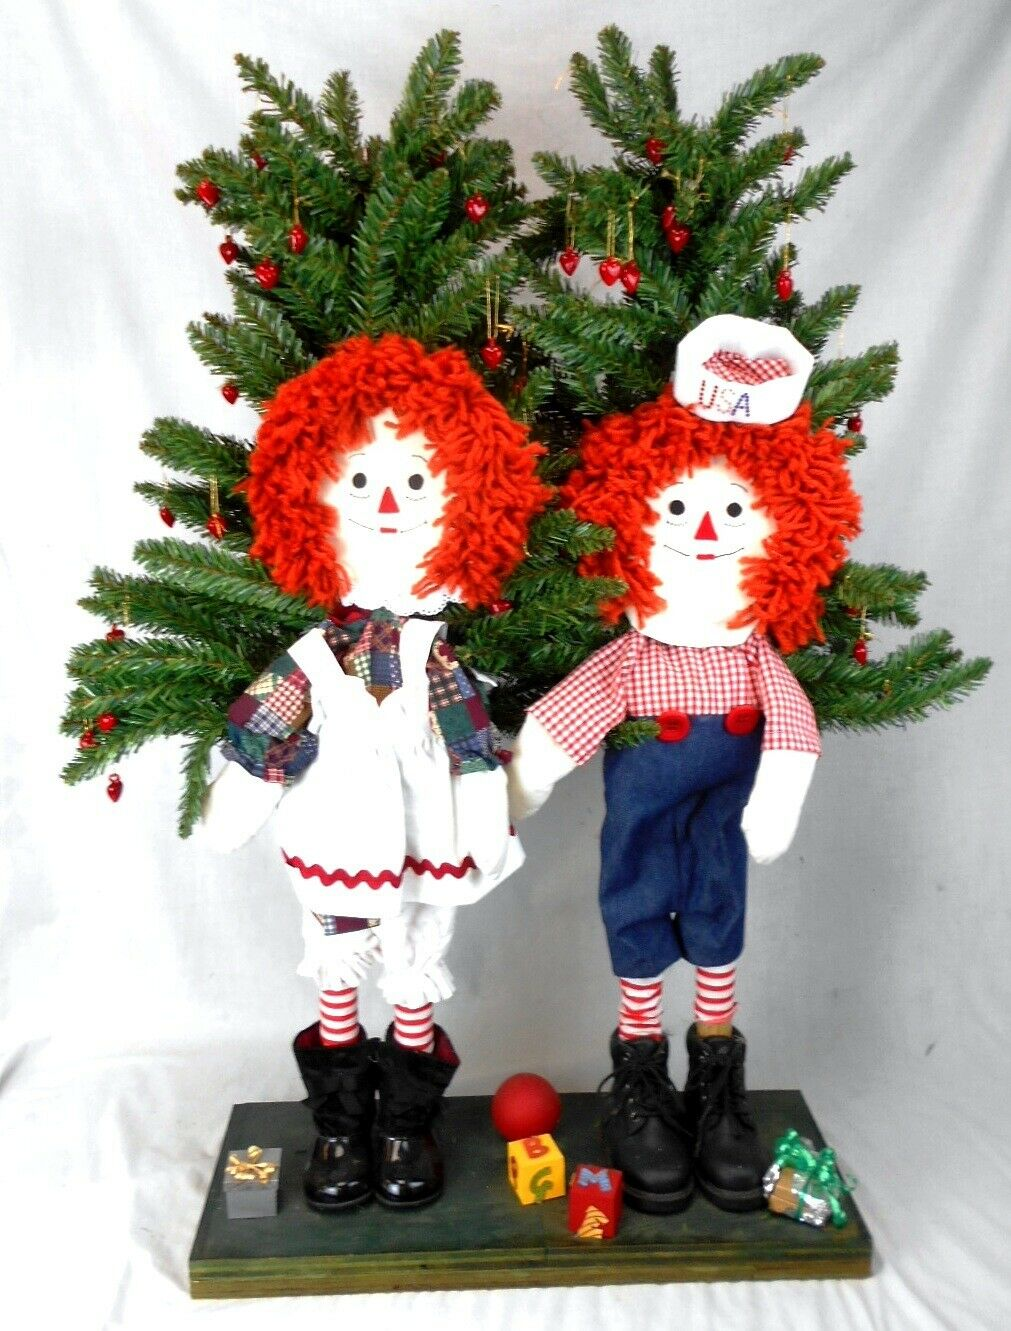 Huge OOAK Raggedy Ann & Raggedy Andy Figures at Christmastime